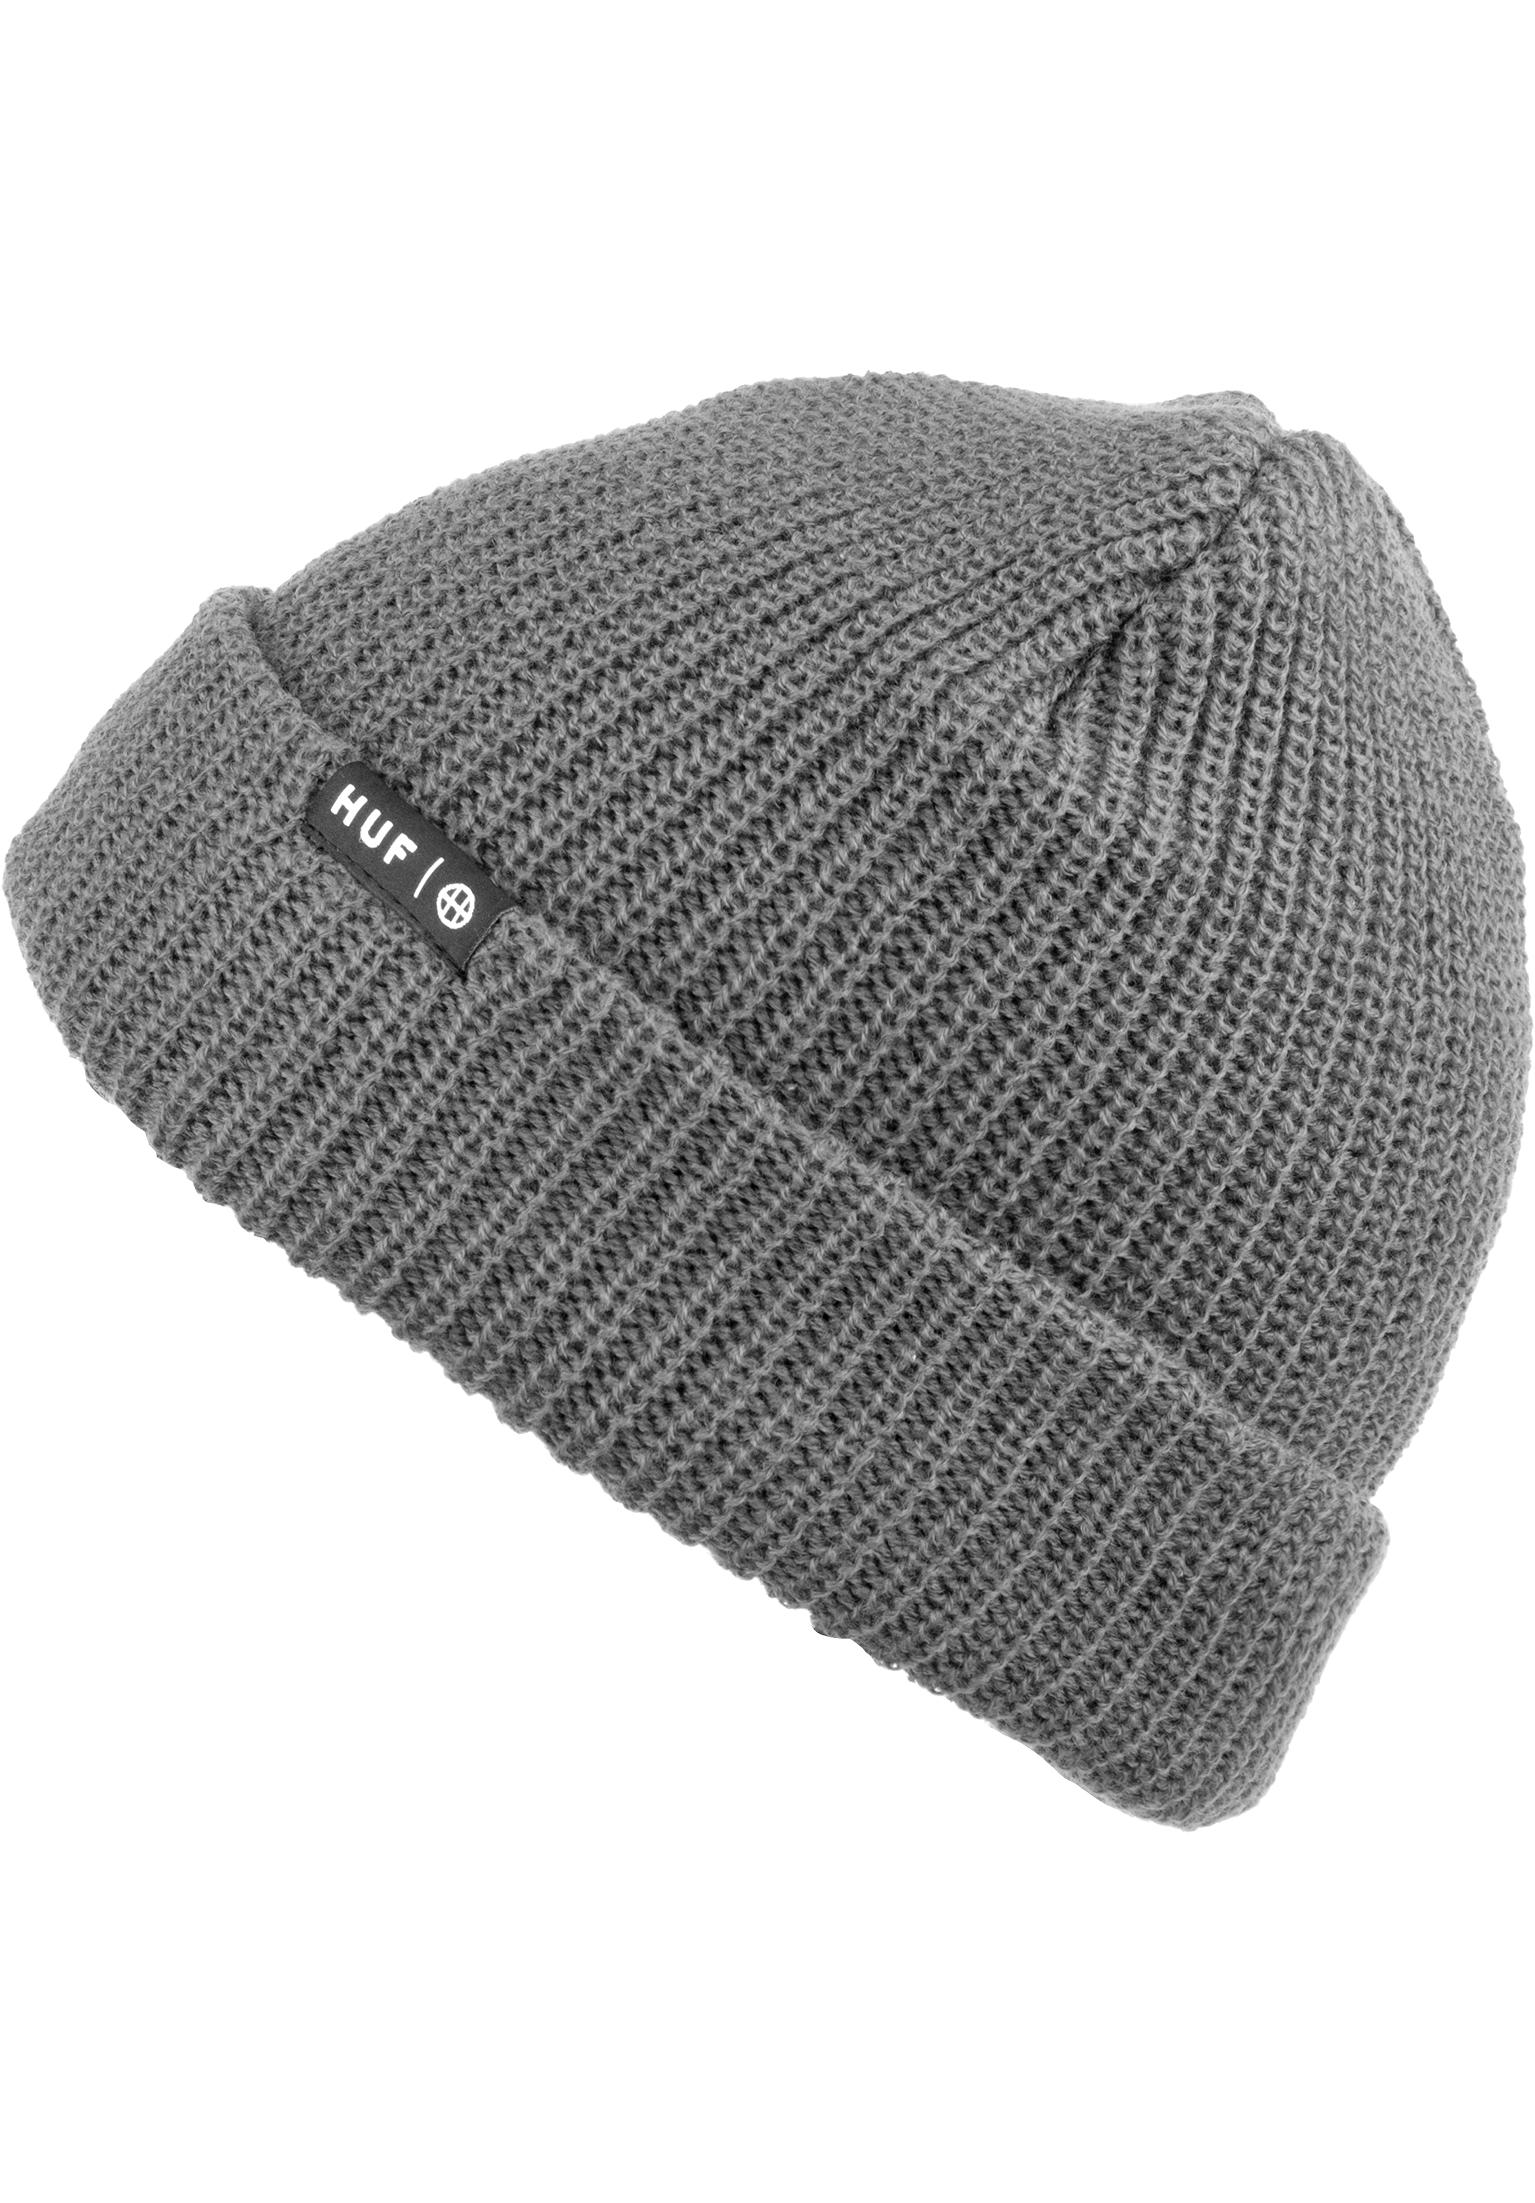 6dddfde062af8 Usual HUF Beanies in greyheather for Men